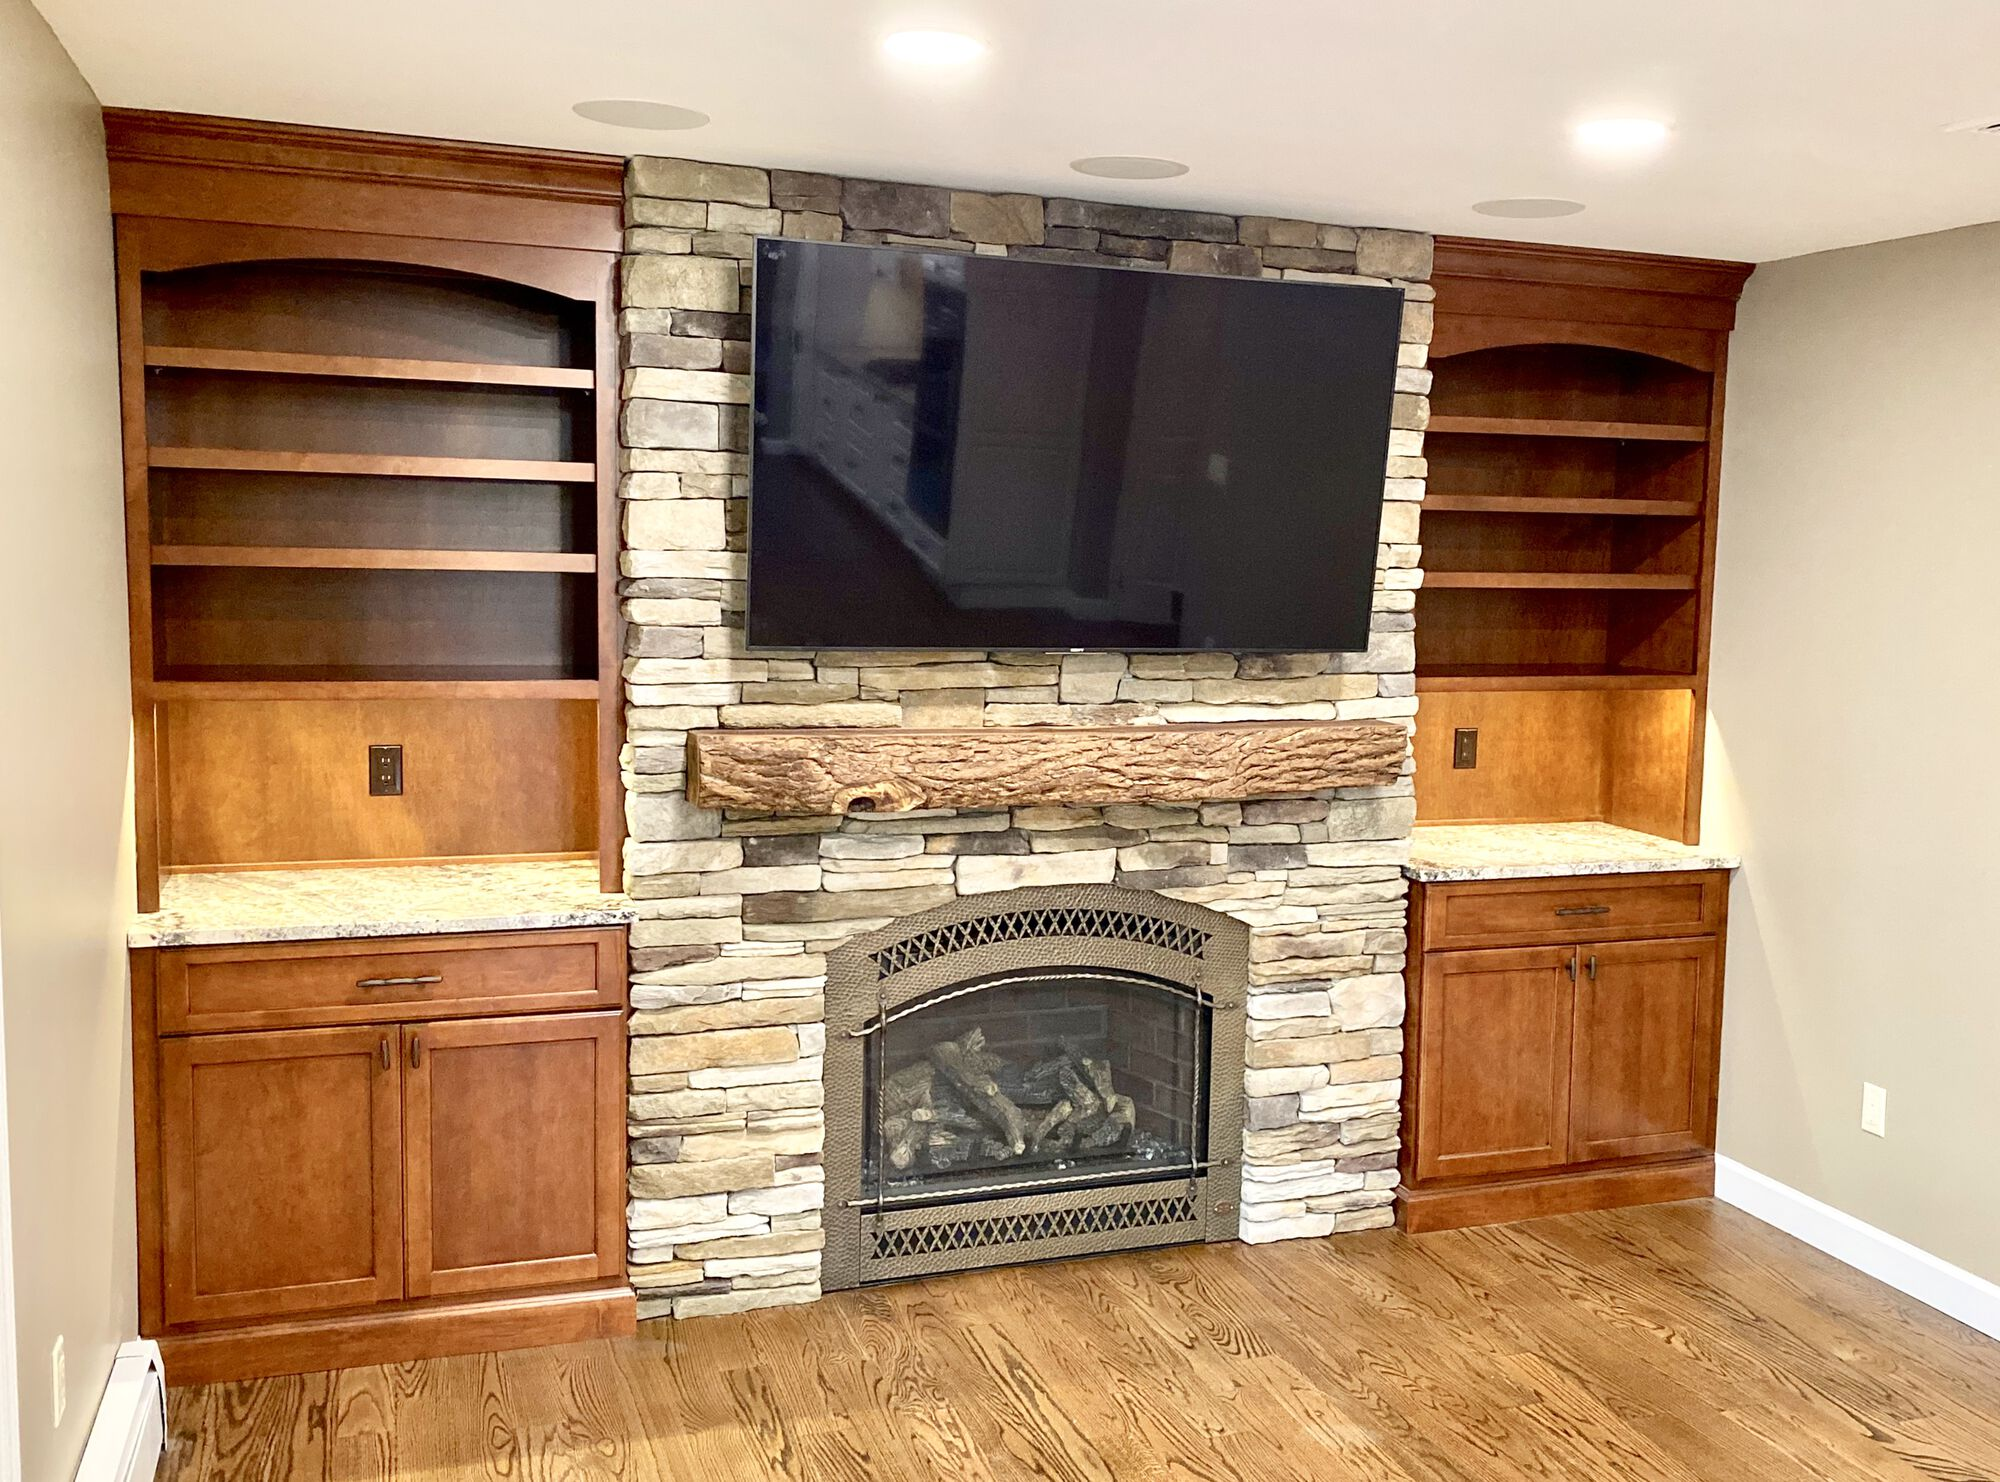 Built In Cabinetry with Boral Stone for Fireplace Surround in Rockaway, Morris County NJ